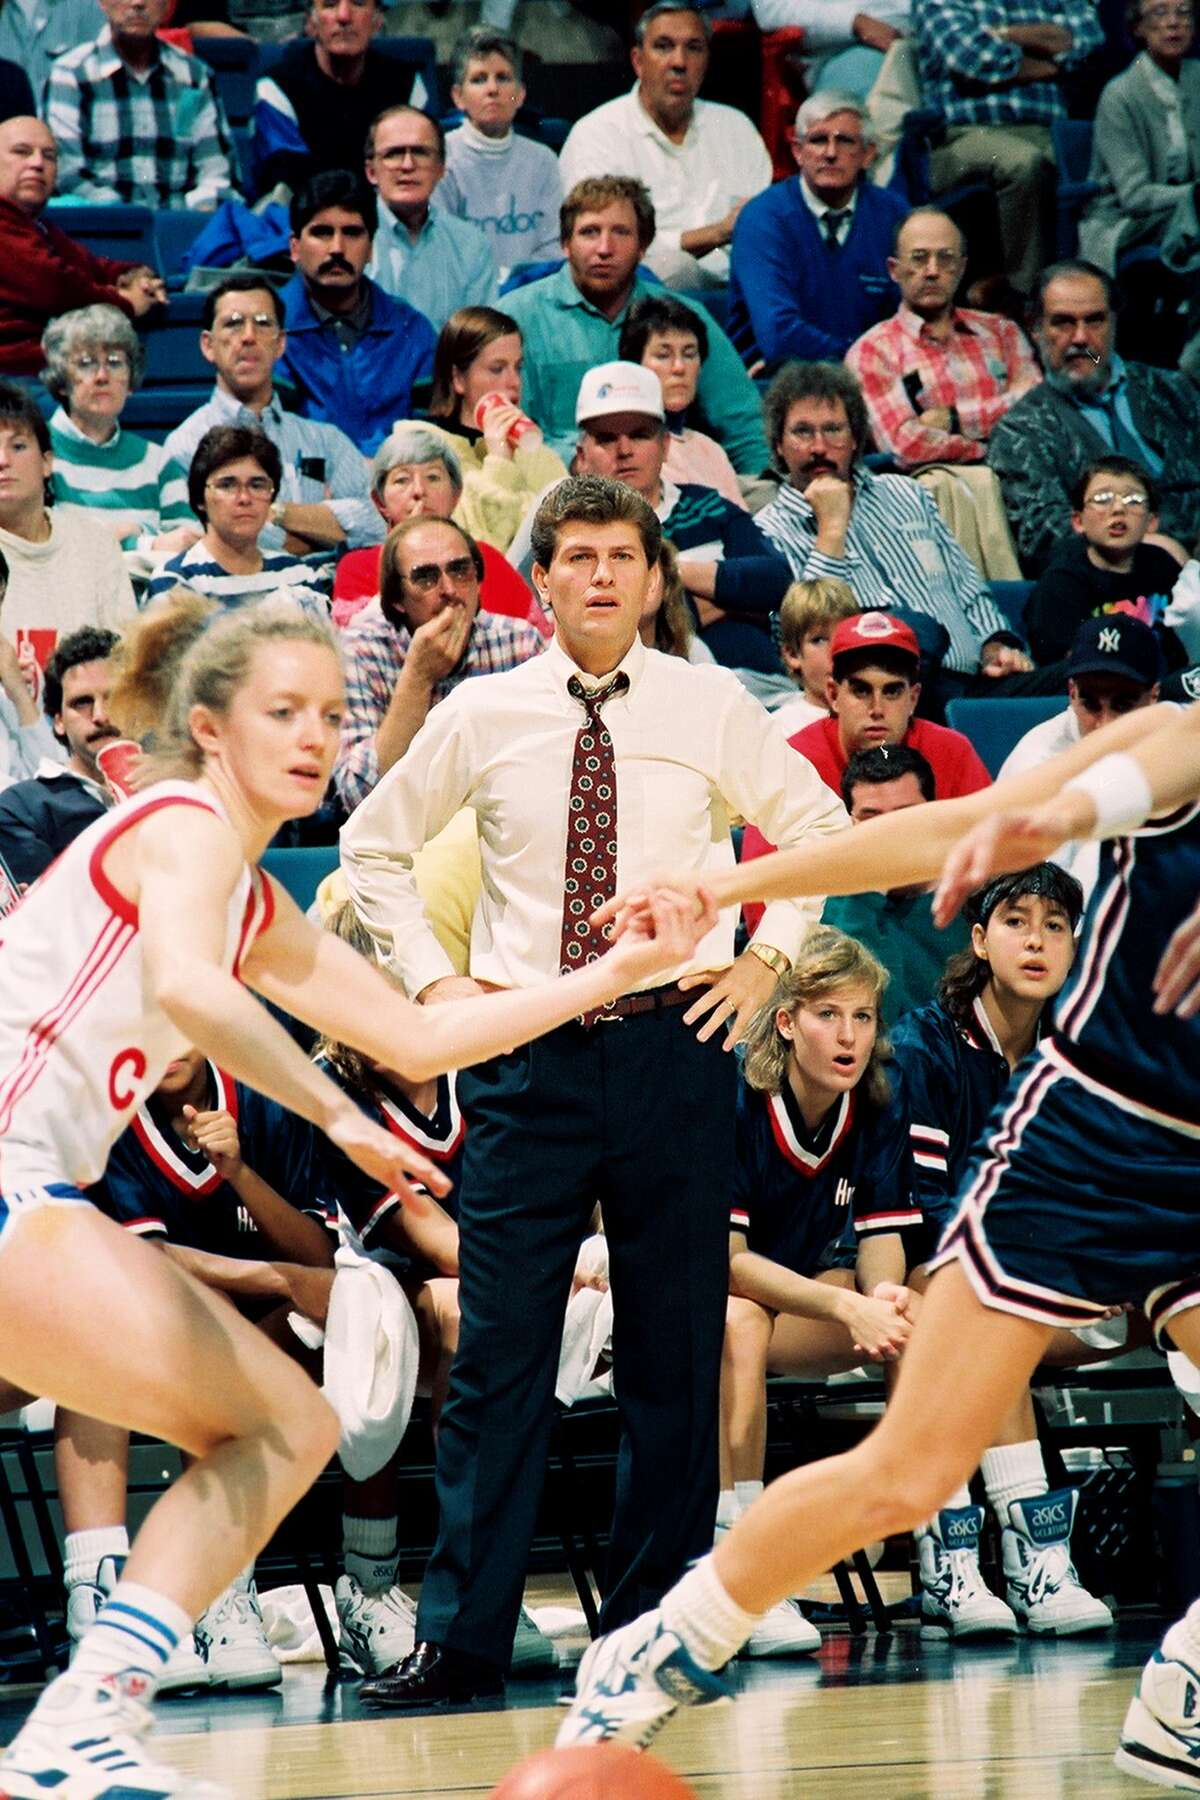 Italian-born American women's basketball coach Geno Auriemma, of the University of Connecticut, paces the sidelines during a game against the Russian national team, Storrs, 1990.